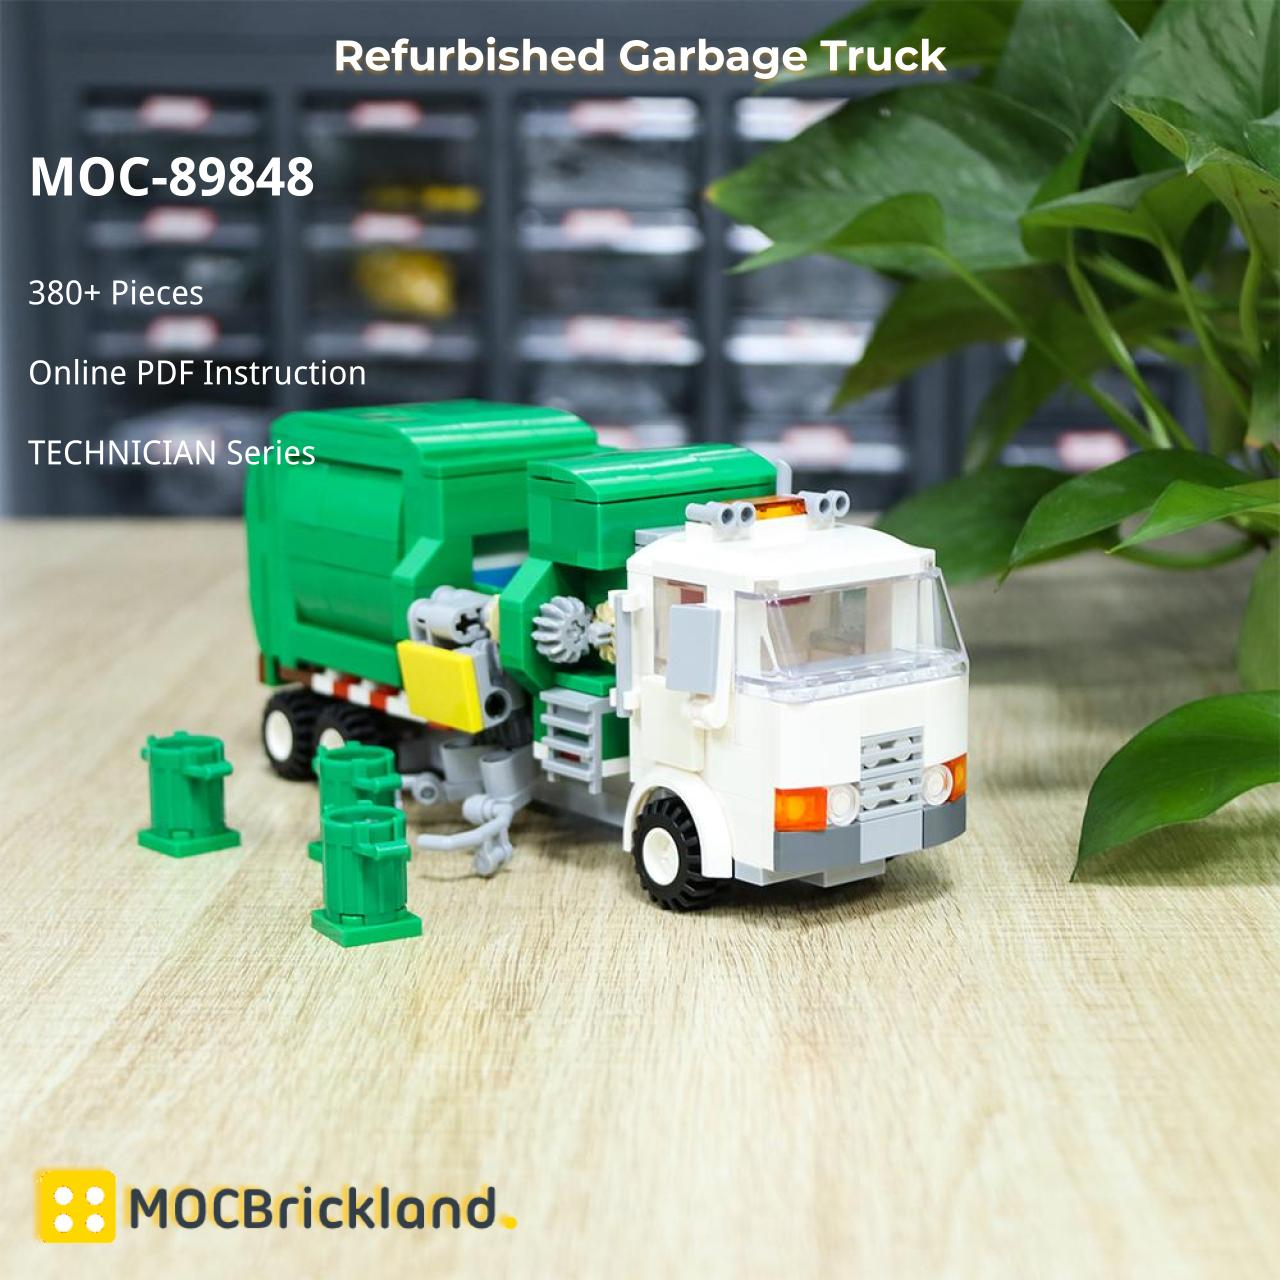 Refurbished Garbage Truck TECHNICIAN MOC-89848 WITH 380 PIECES